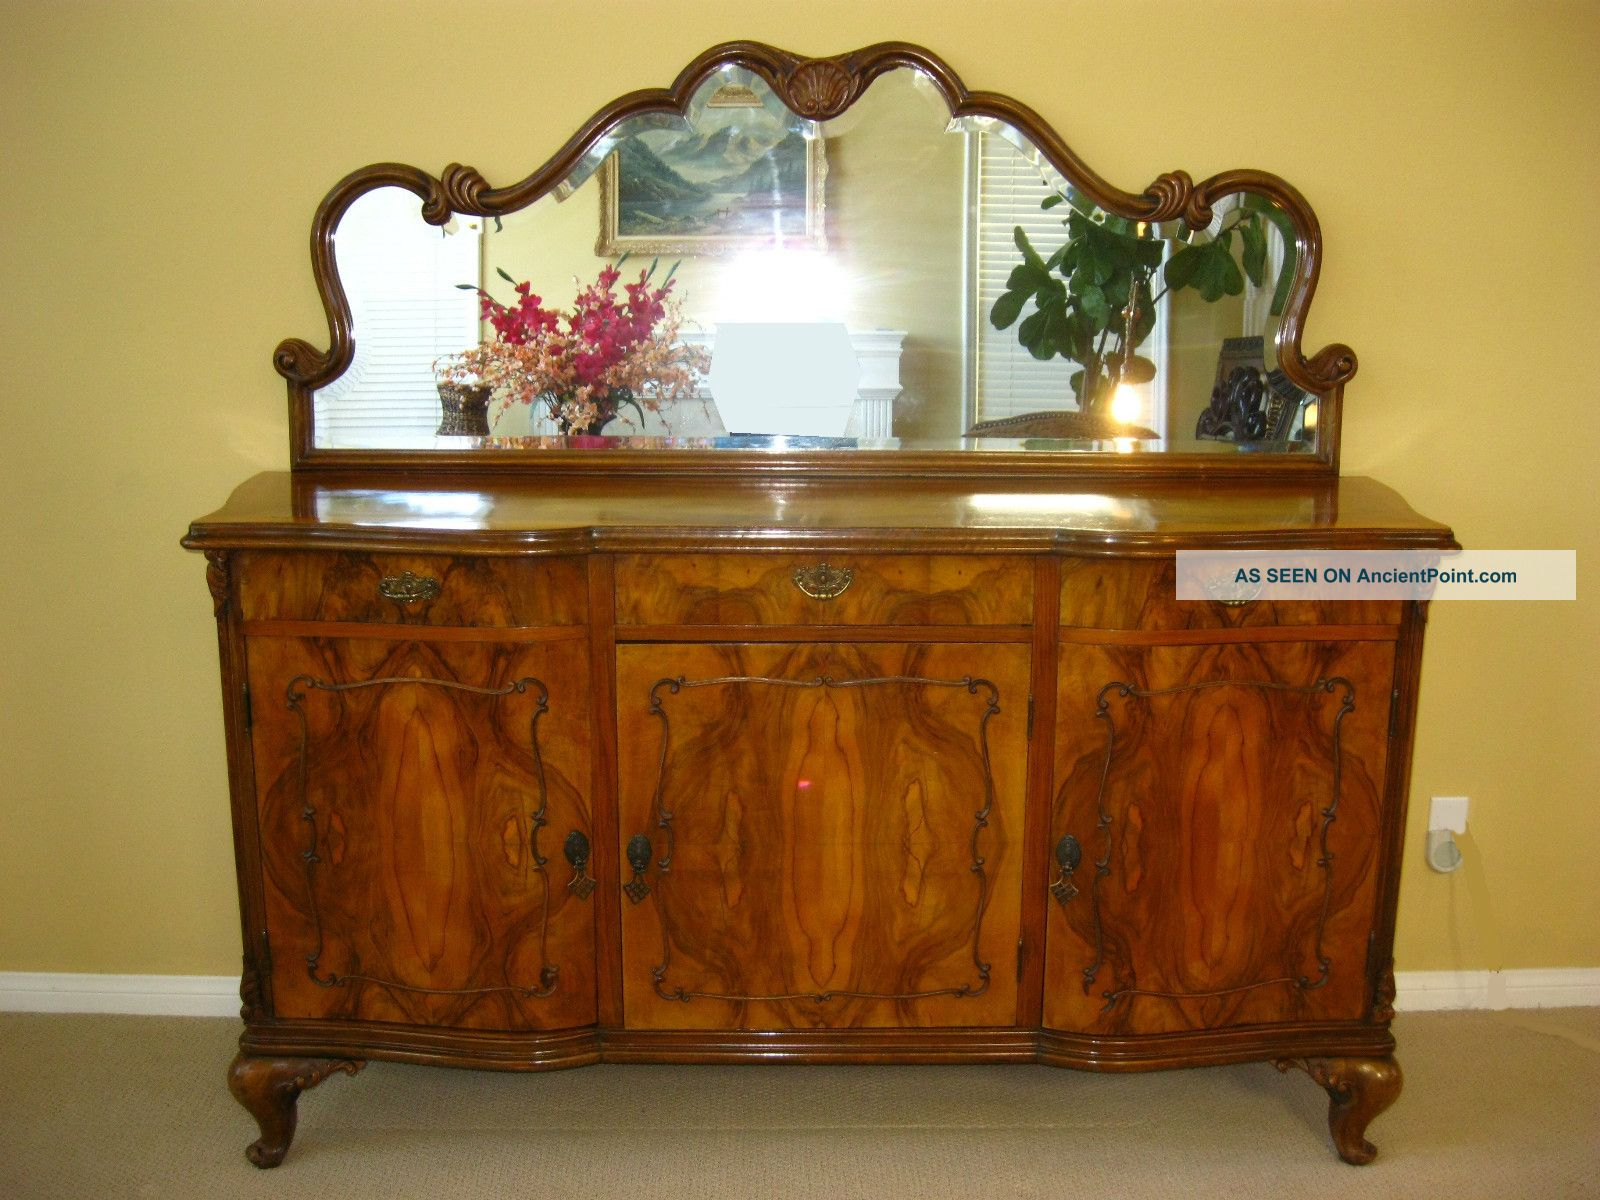 Exquisite Vintage Burl Wood Buffet W/ Mirror Sideboard Credenza Onlays Carvings Post-1950 photo